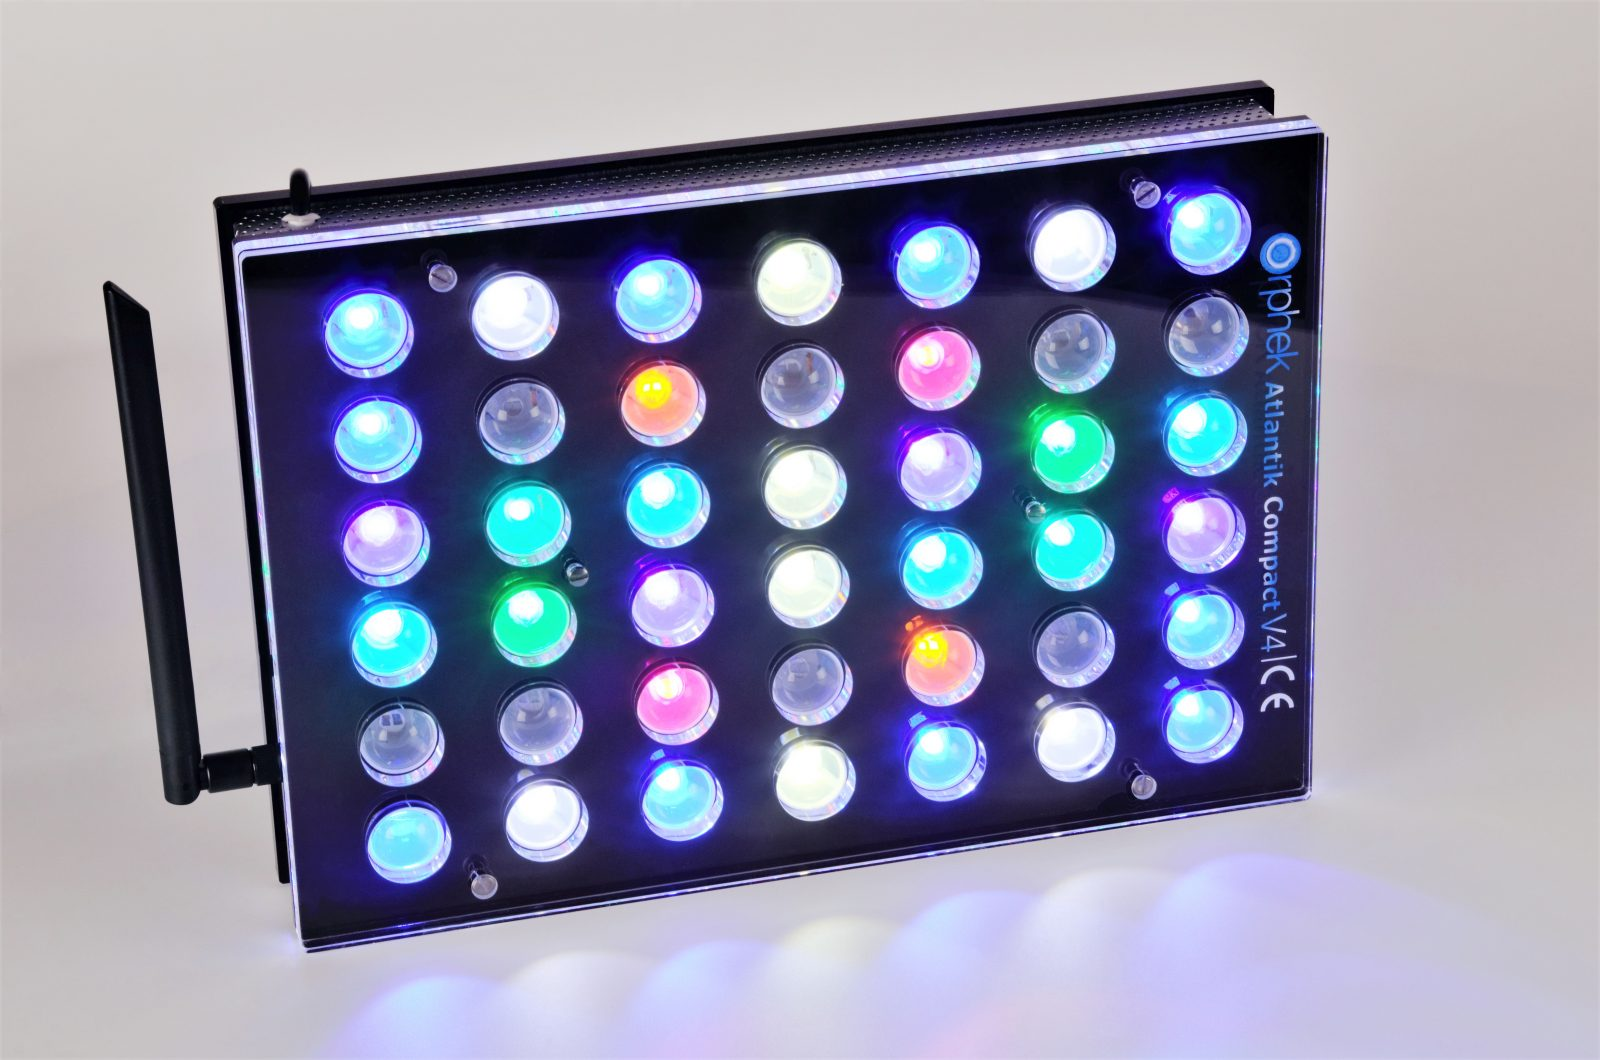 Orphek-Aquarium-LED-Beleuchtung-Atlantik -Compact-V4-light -on -channel 1 + 2 + 4